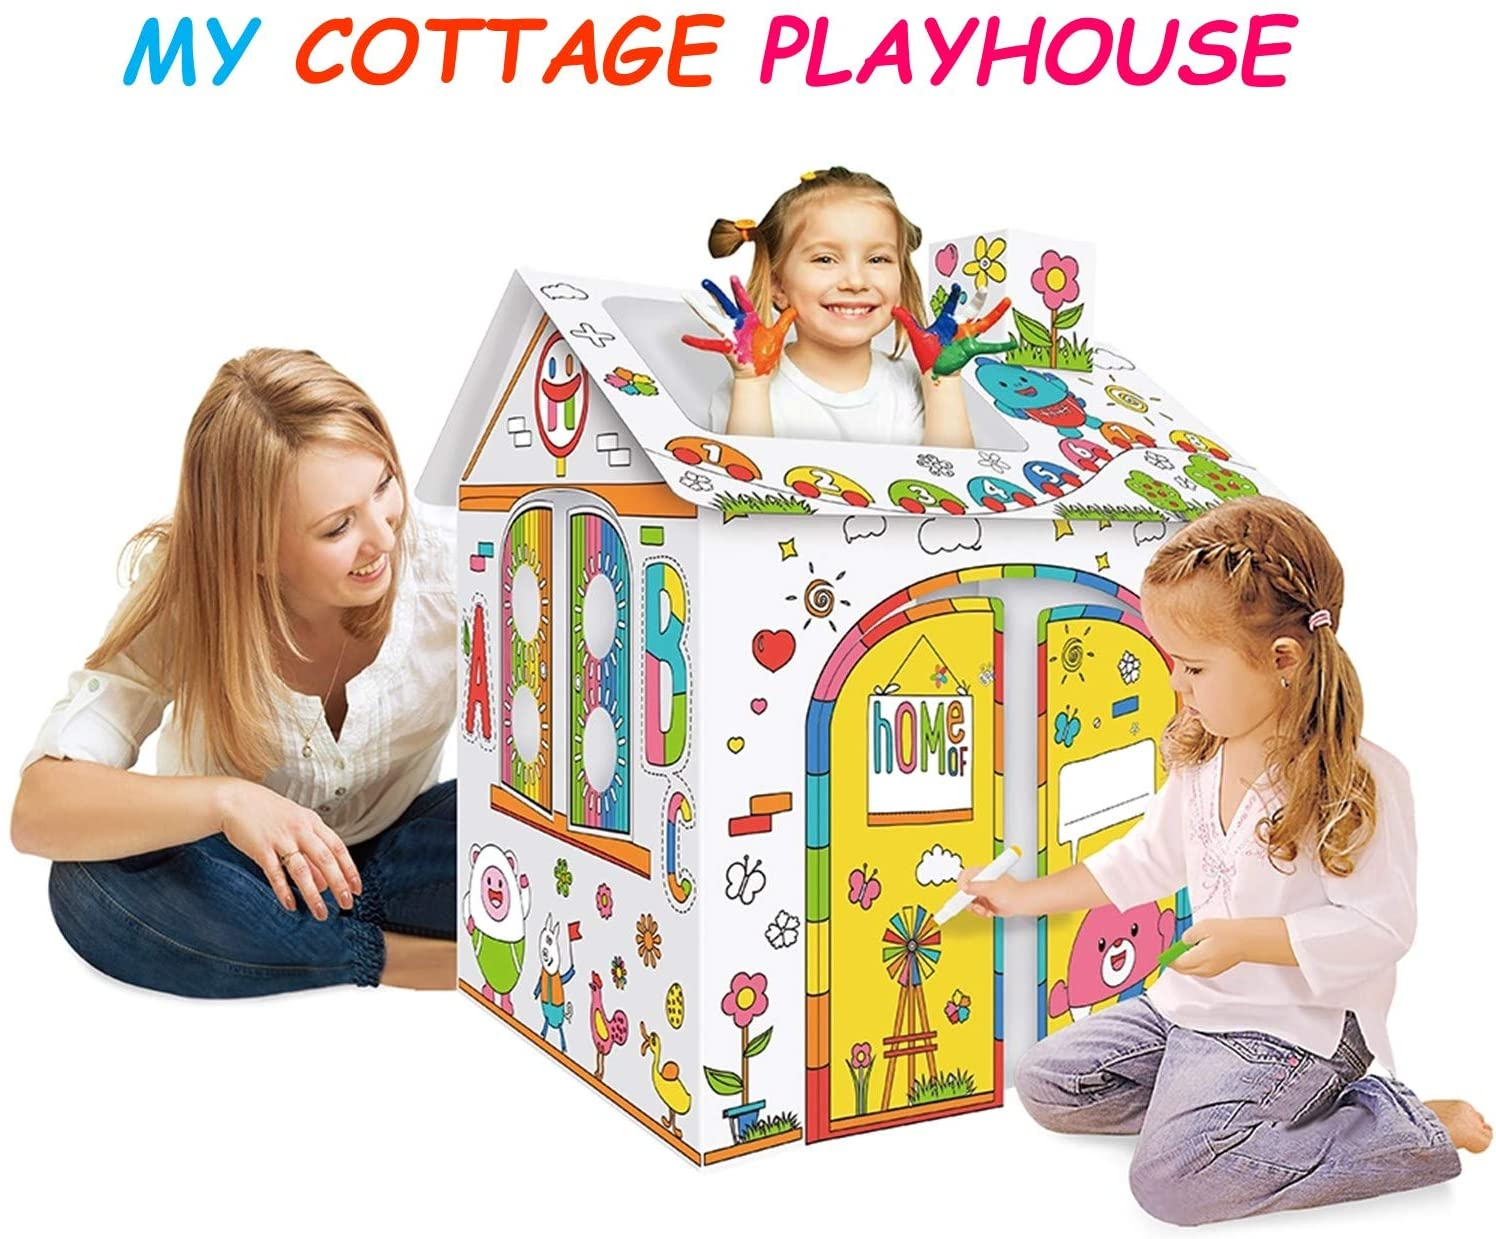 Jigamix Cardboard Playhouse for Kids Indoor Playhouse with Music & Light Cardboard to Color Stickers Activities for 3 4 5 Year olds and Up 30